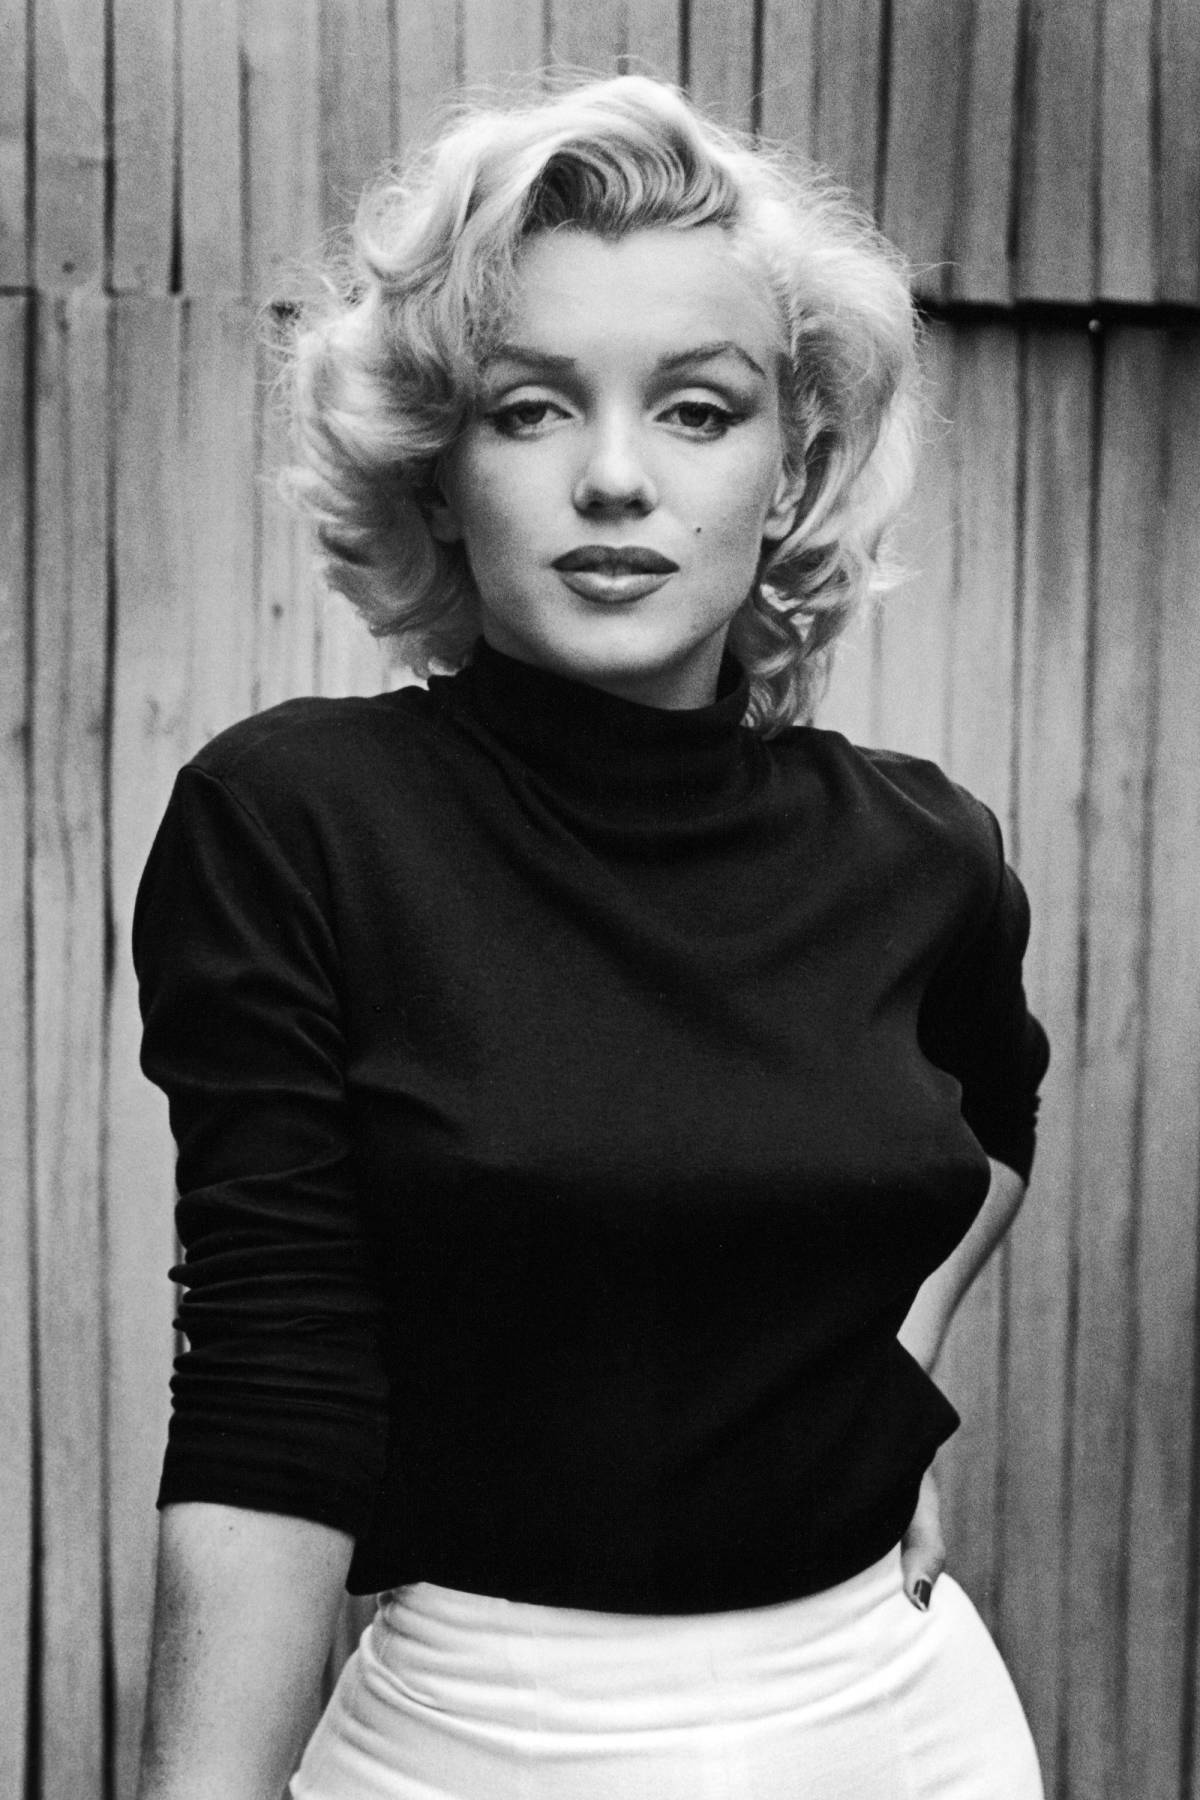 marilyn monroe | 7wallpapers